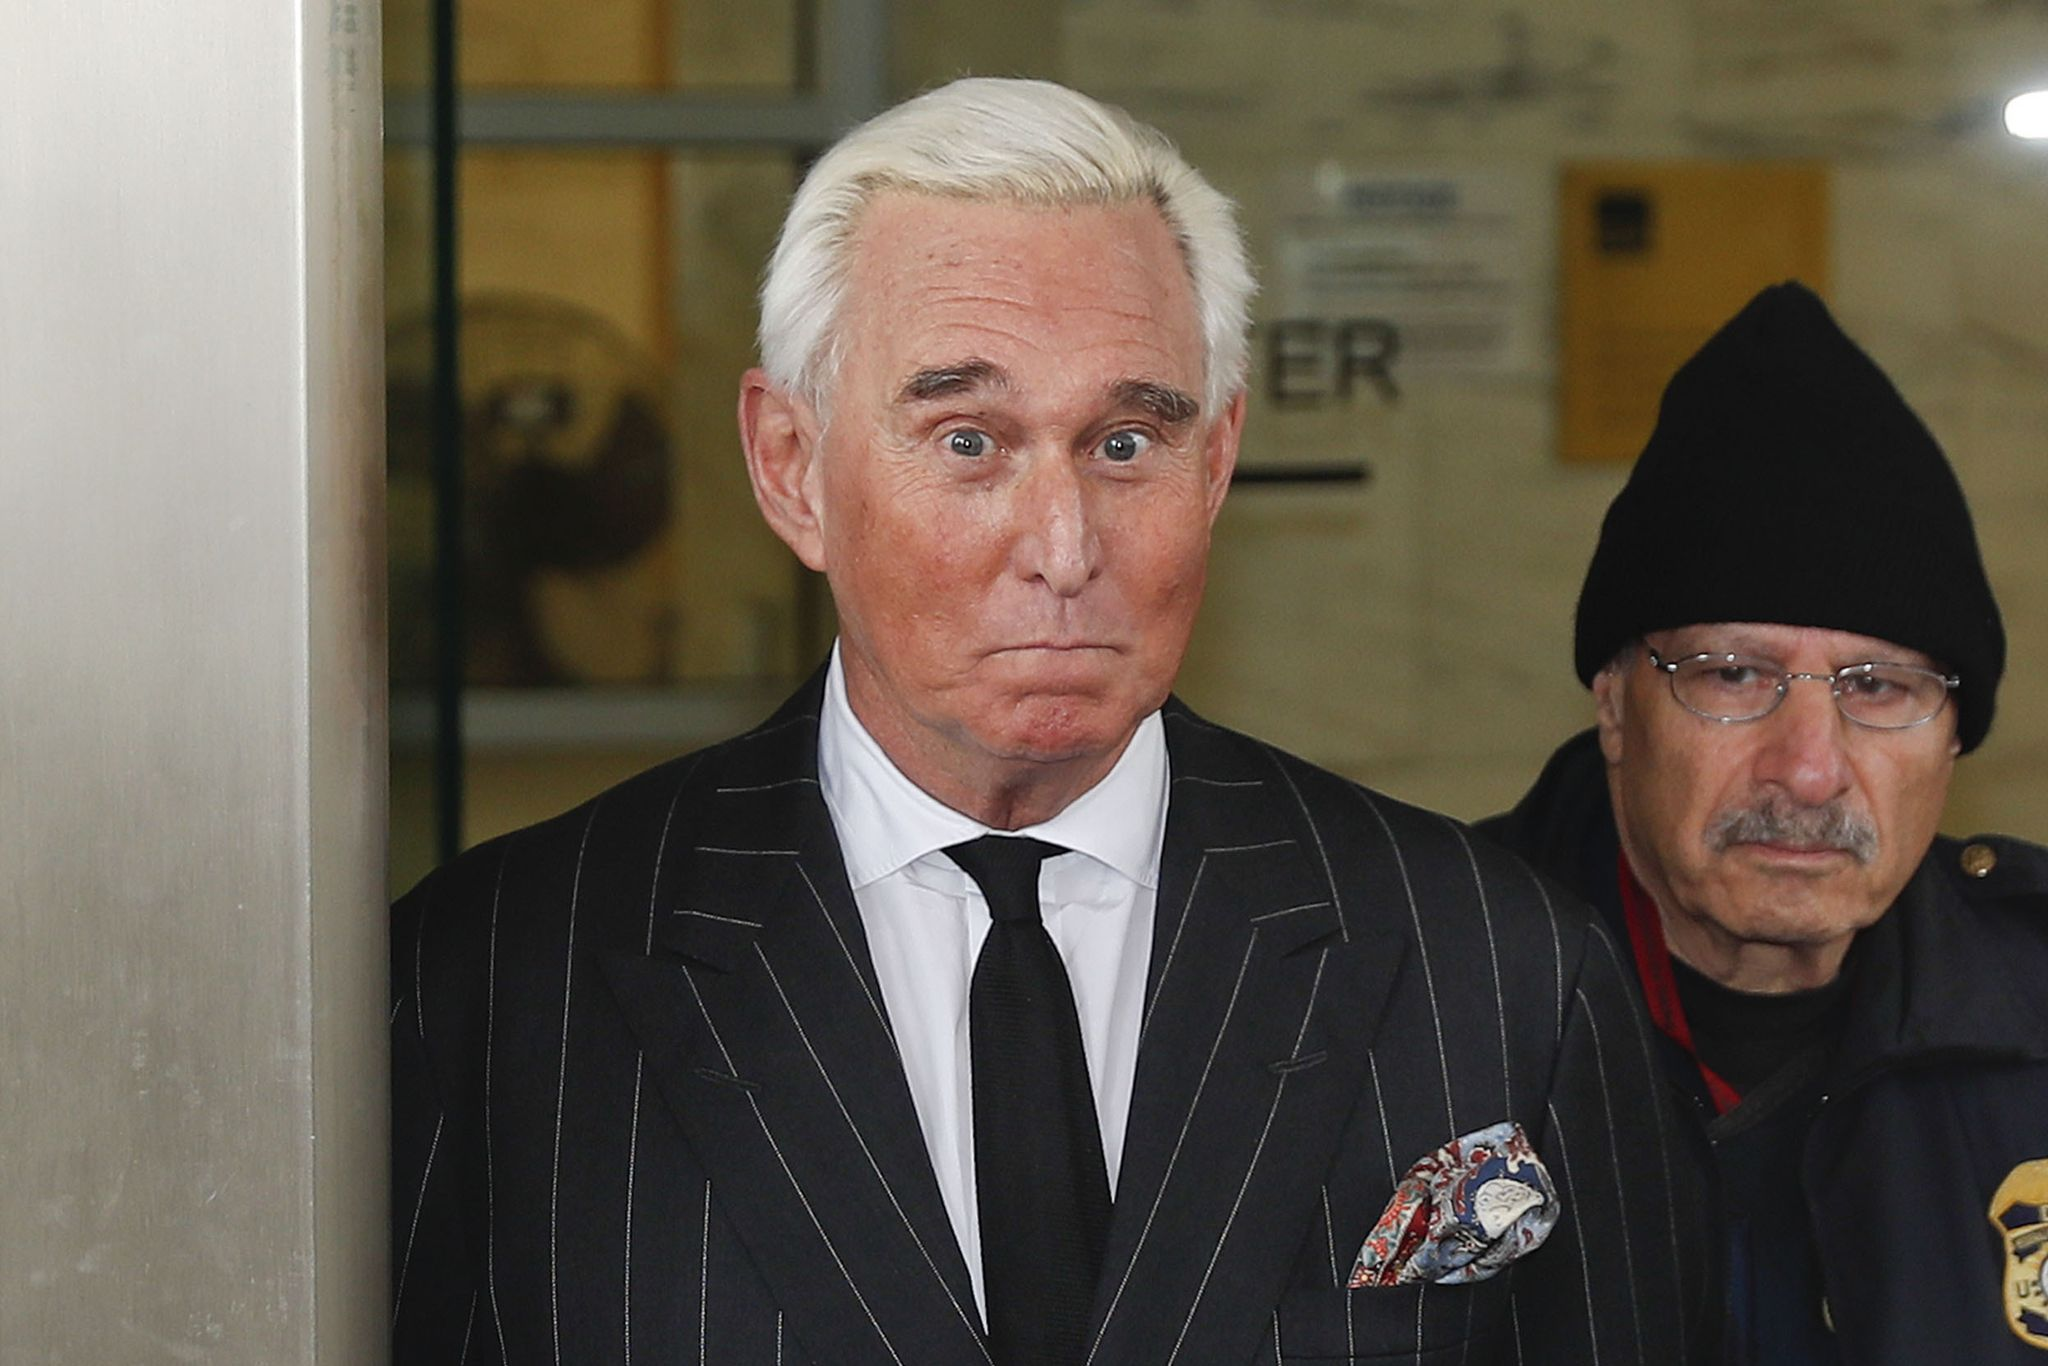 Federal judge slaps Roger Stone with gag order